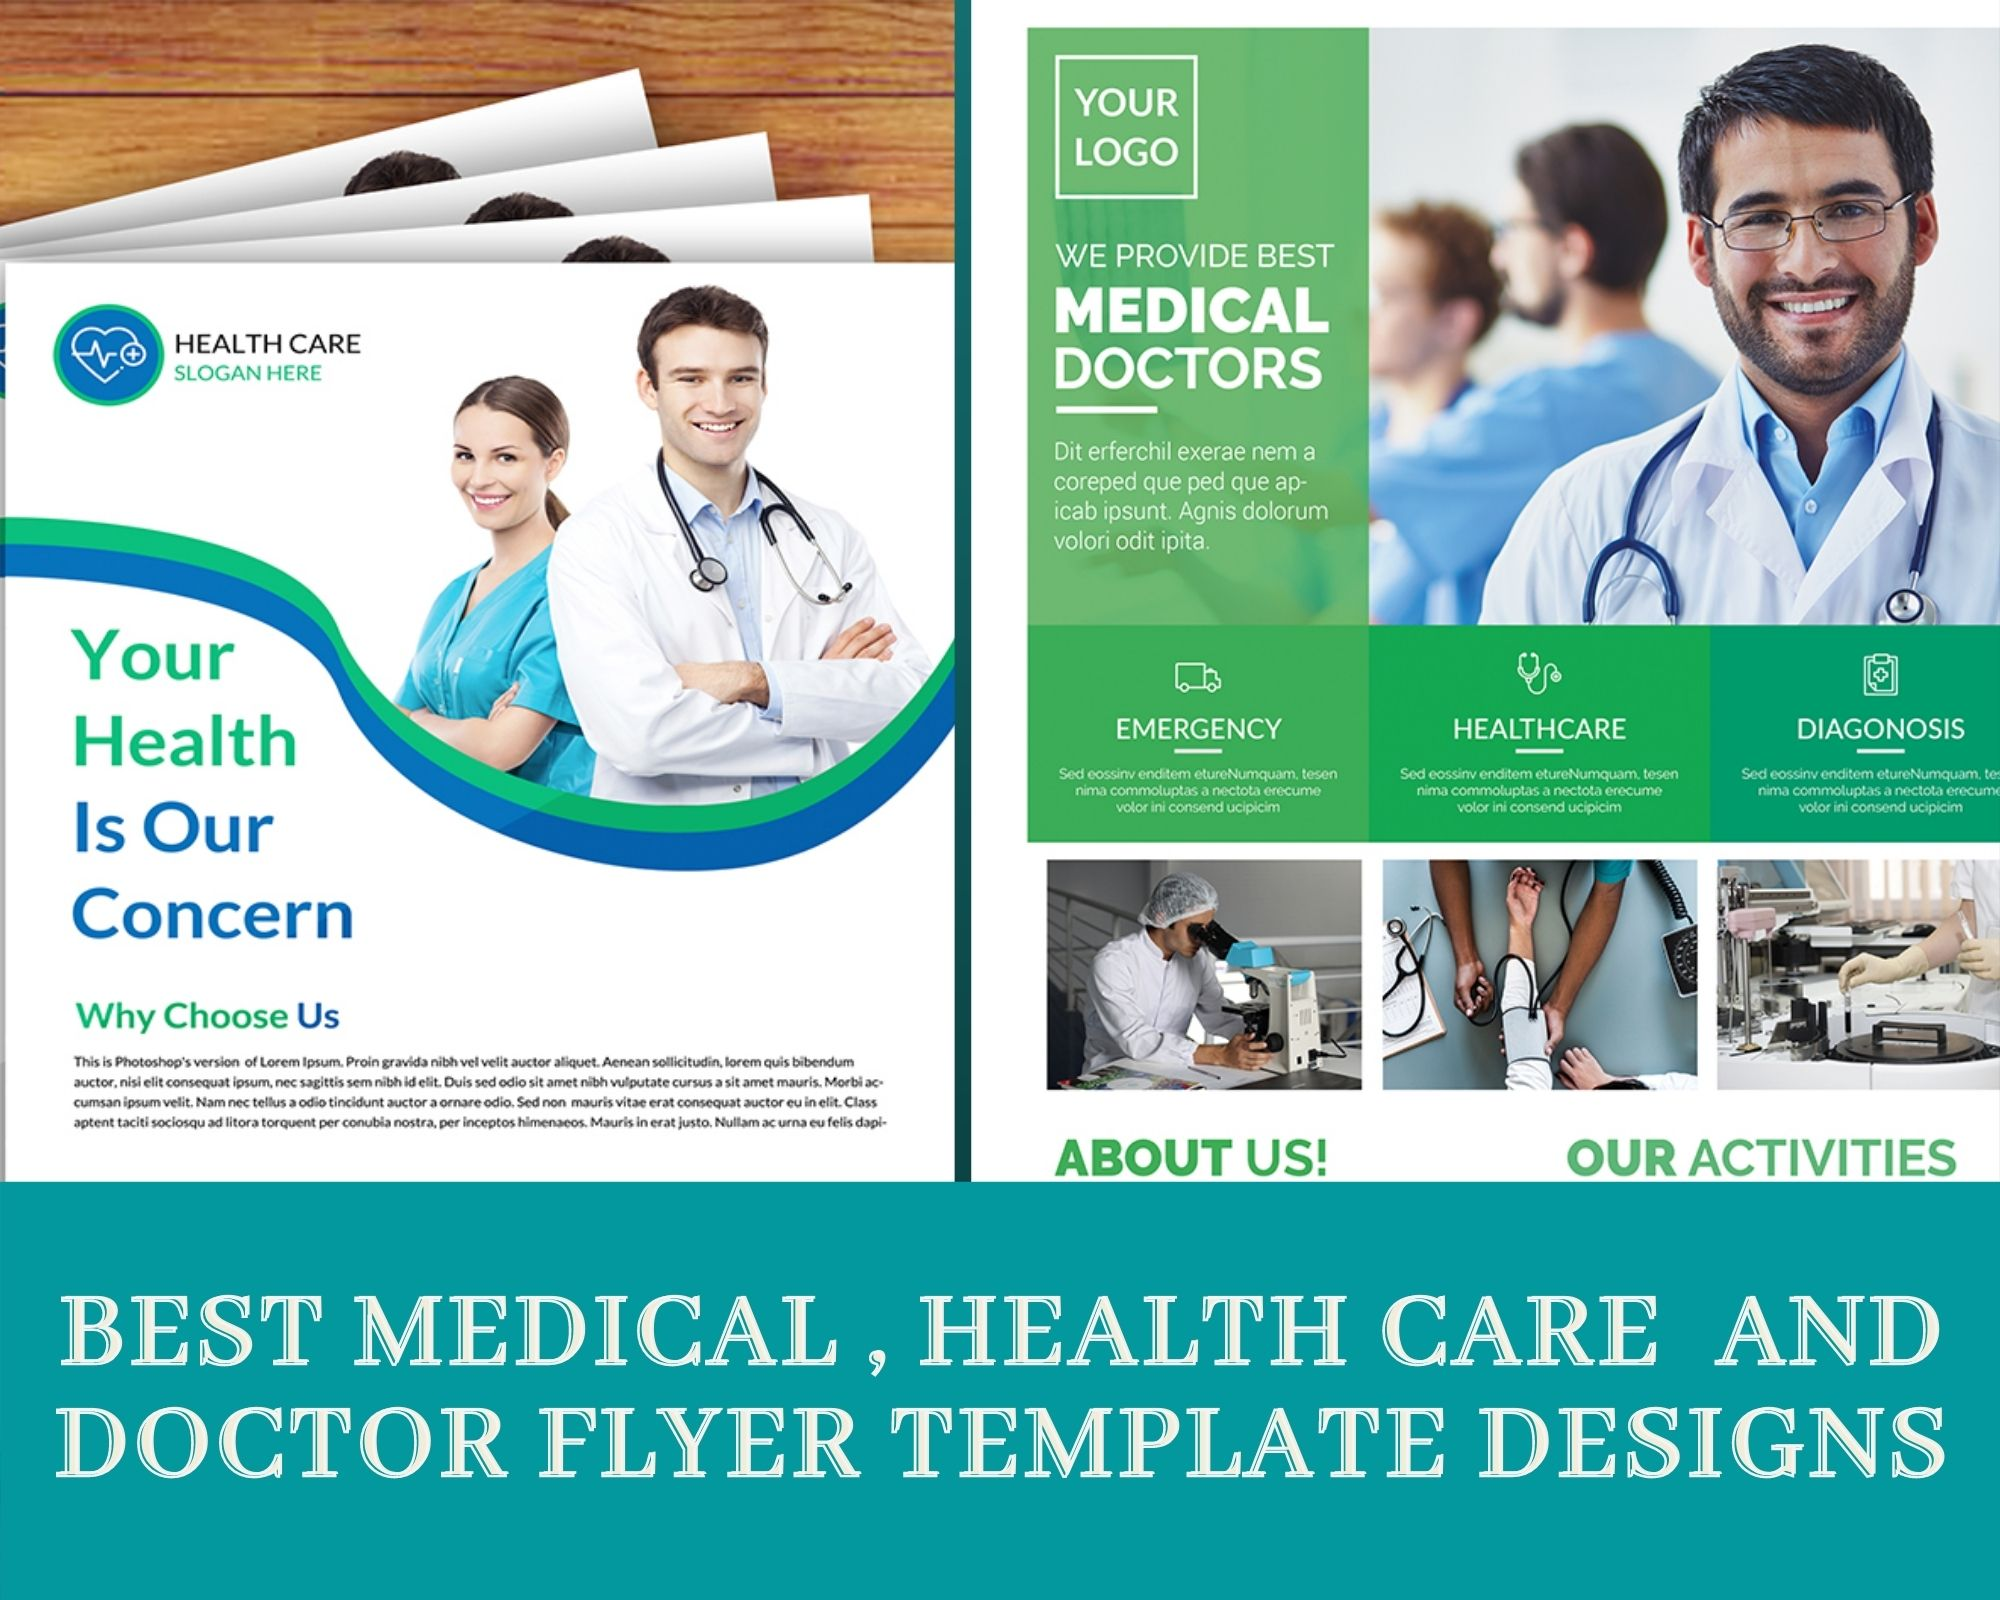 Best Medical, Healthcare and Doctor Flyer Template Designs